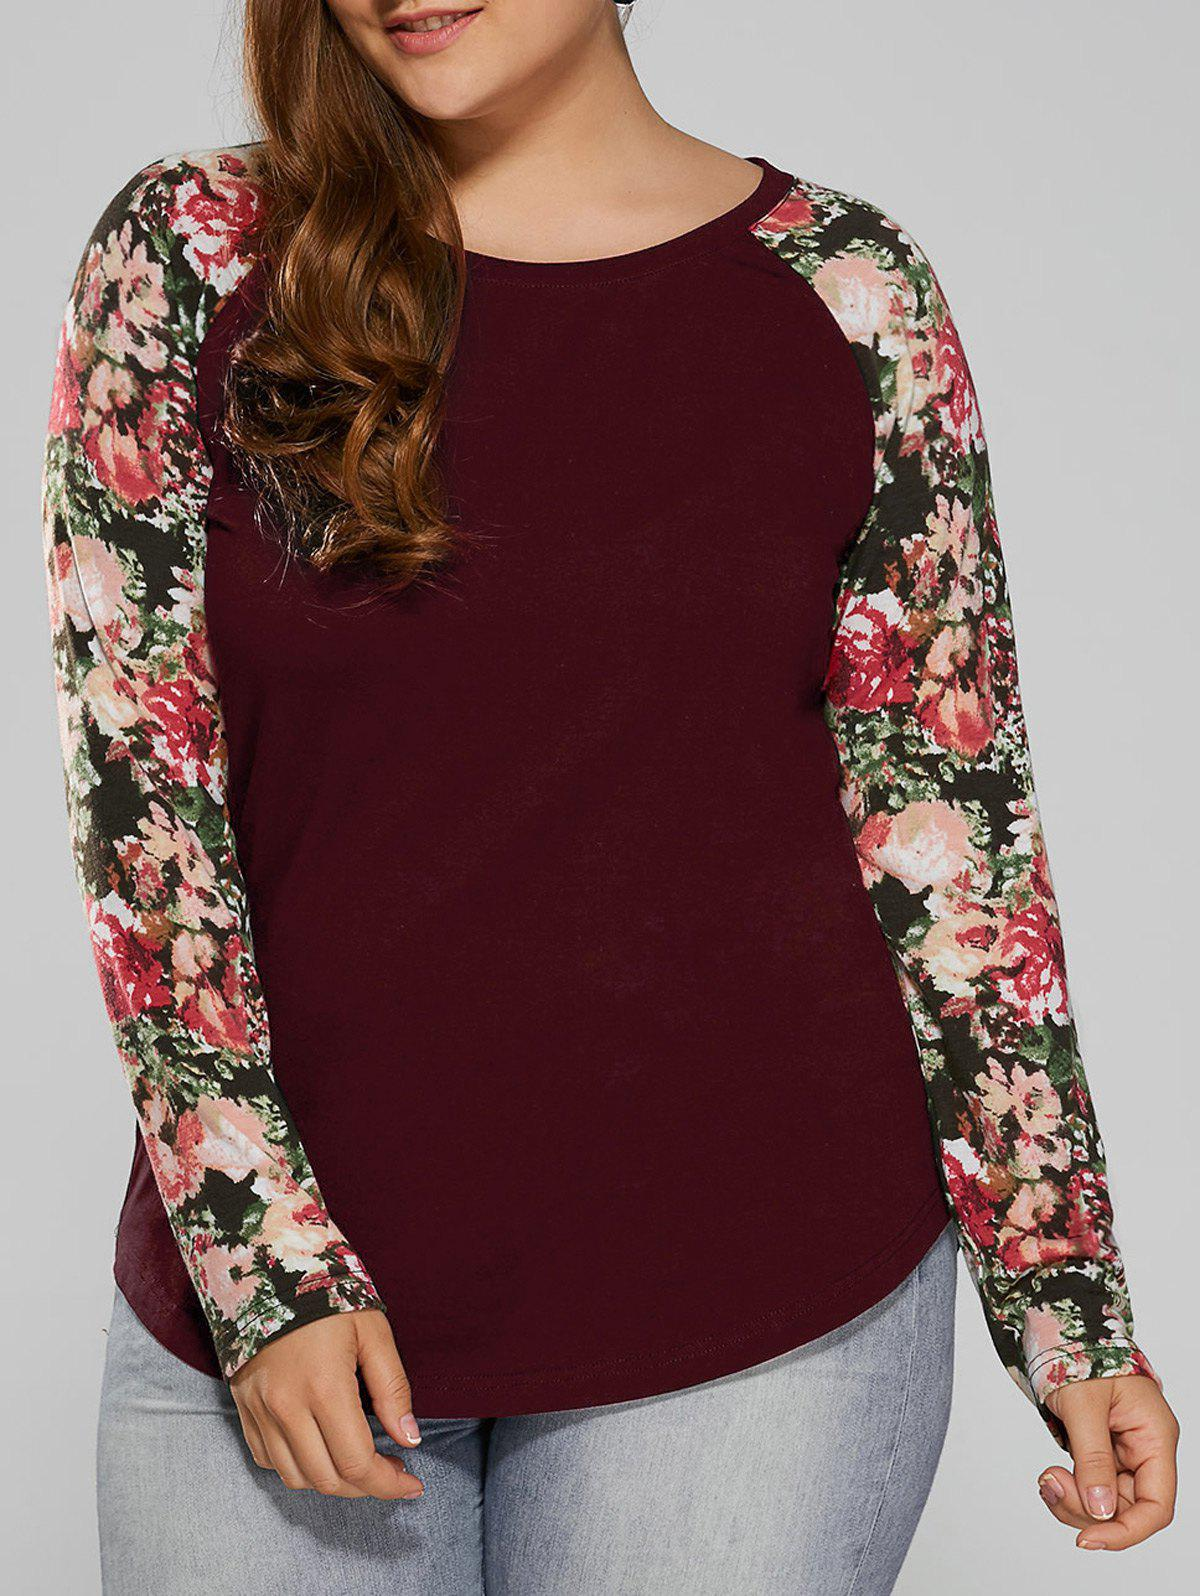 Plus Size Floral Raglan Full Sleeve T-ShirtWOMEN<br><br>Size: 2XL; Color: DARK RED; Material: Cotton Blends,Polyester; Shirt Length: Long; Sleeve Length: Full; Collar: Round Neck; Style: Casual; Season: Fall,Spring; Pattern Type: Floral; Weight: 0.370kg; Package Contents: 1 x T-Shirt;